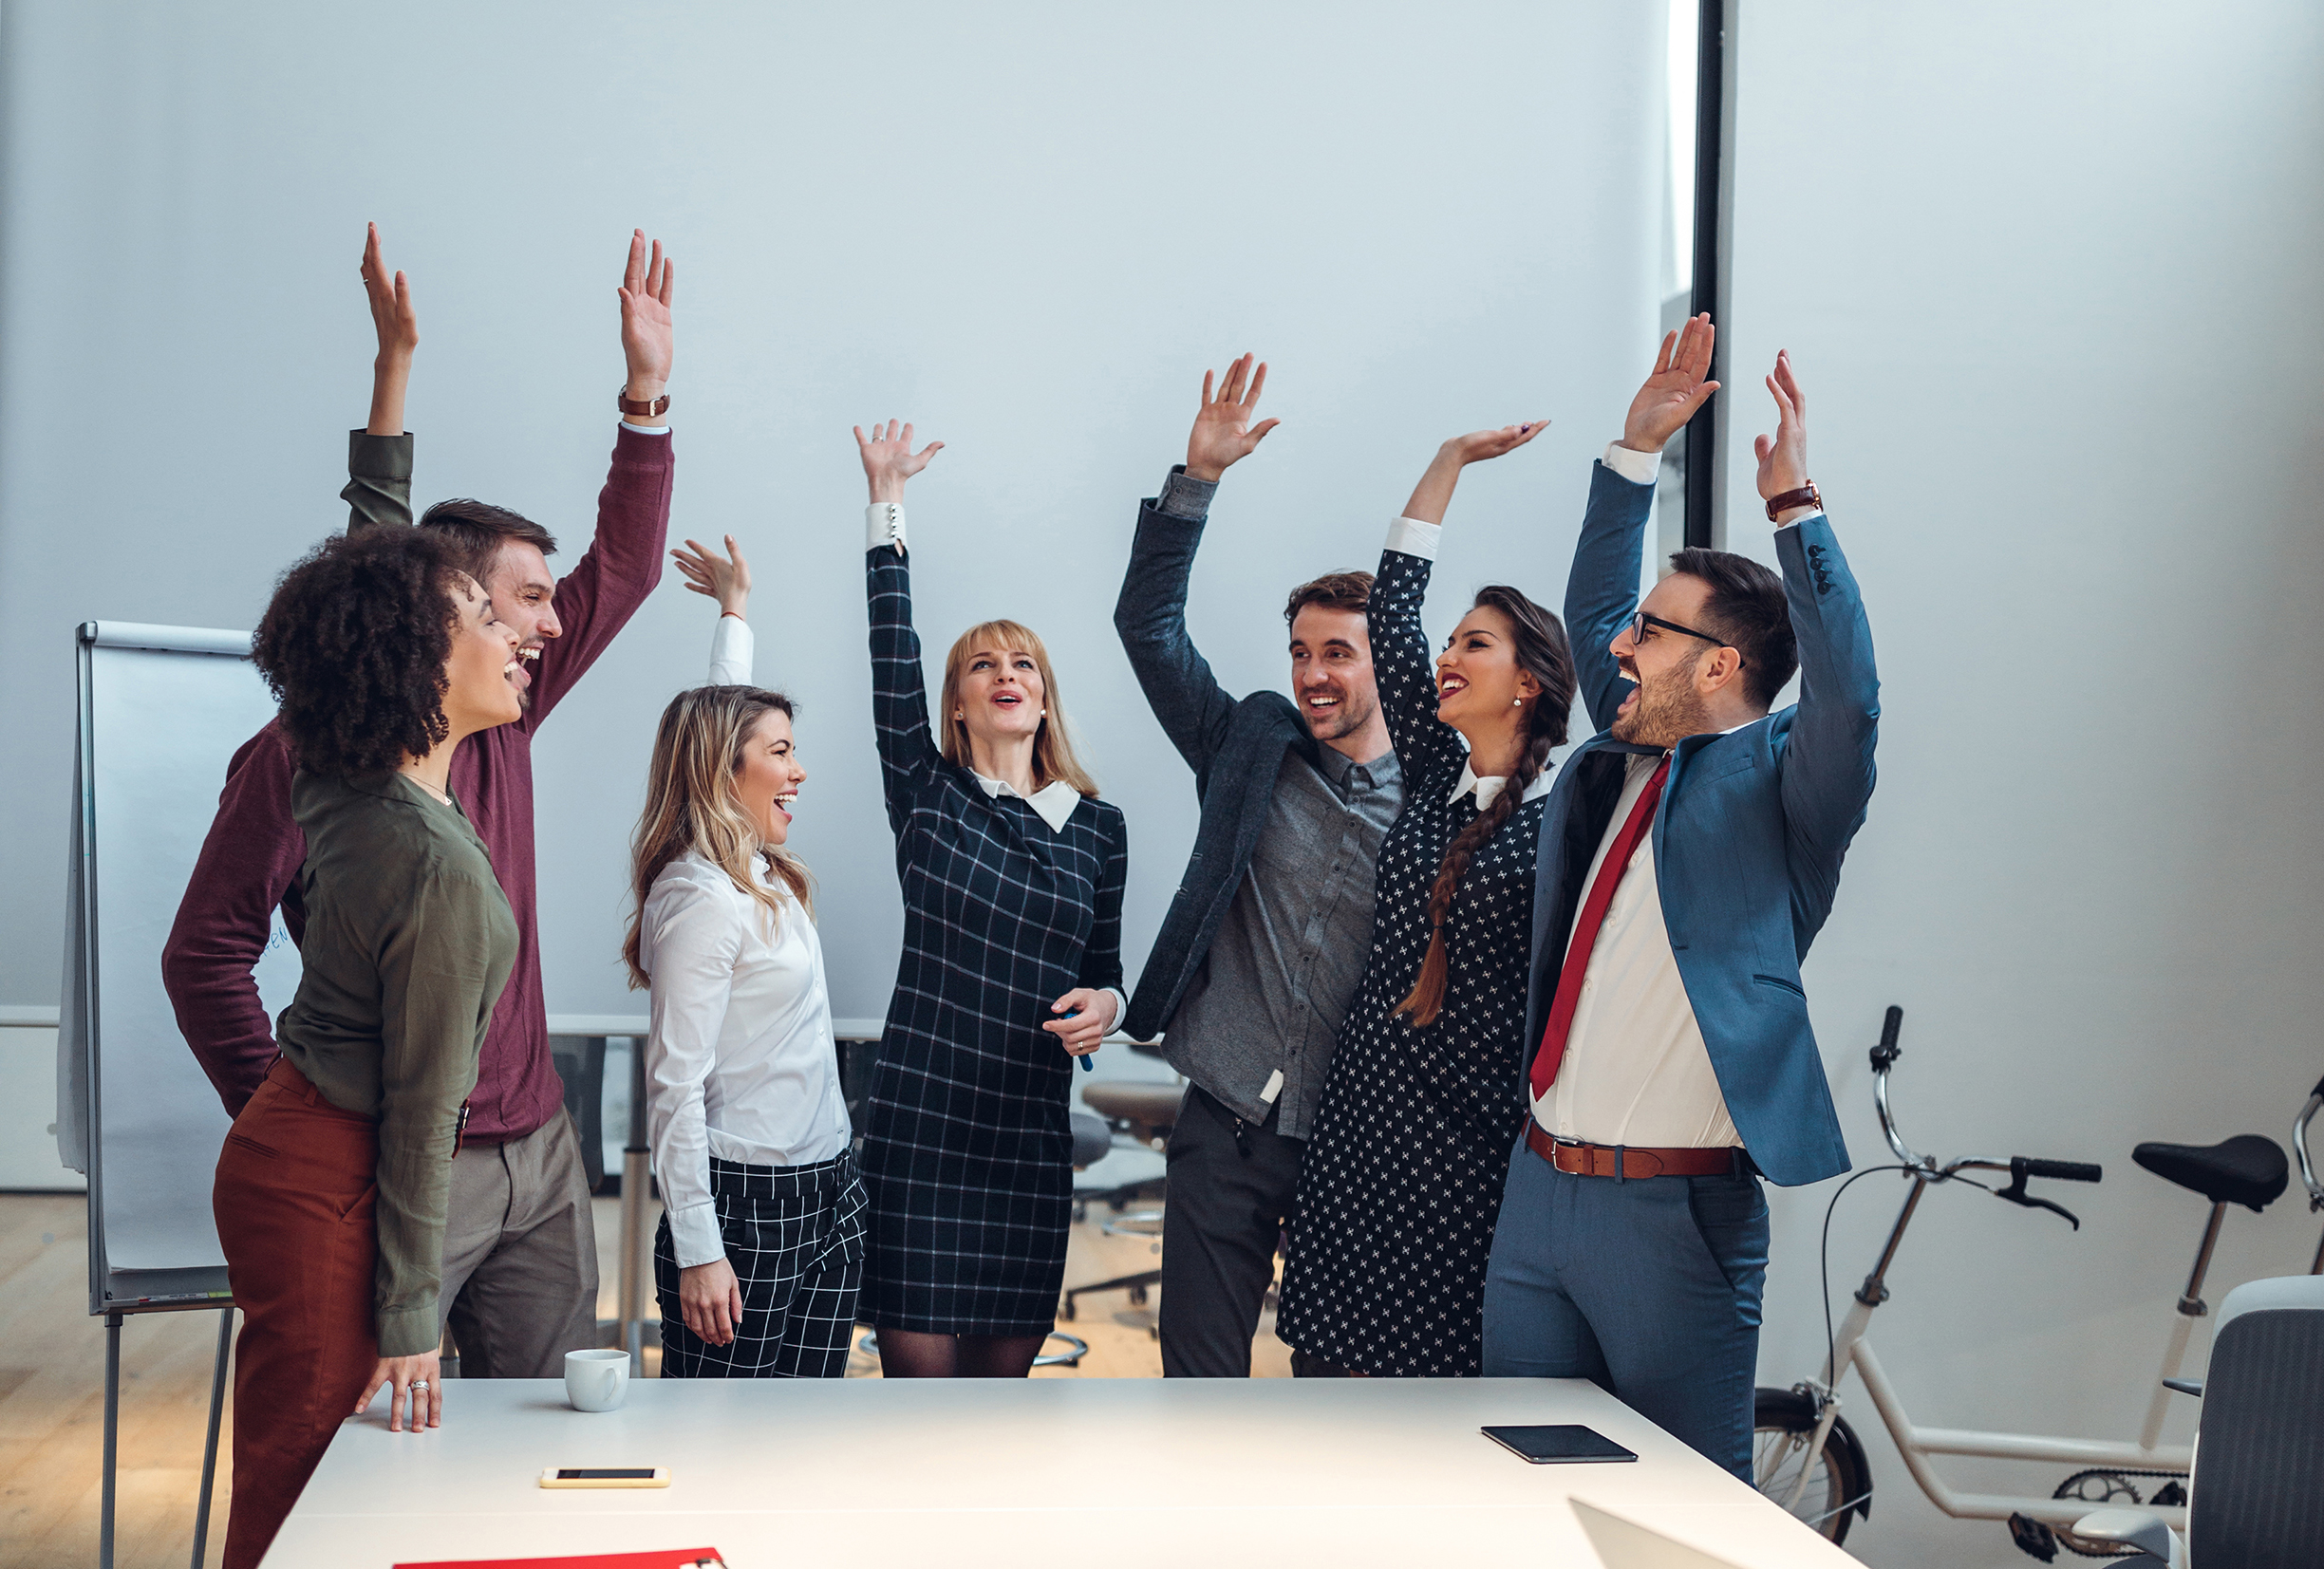 Vertical shot of a group of coworkers cheering in an office